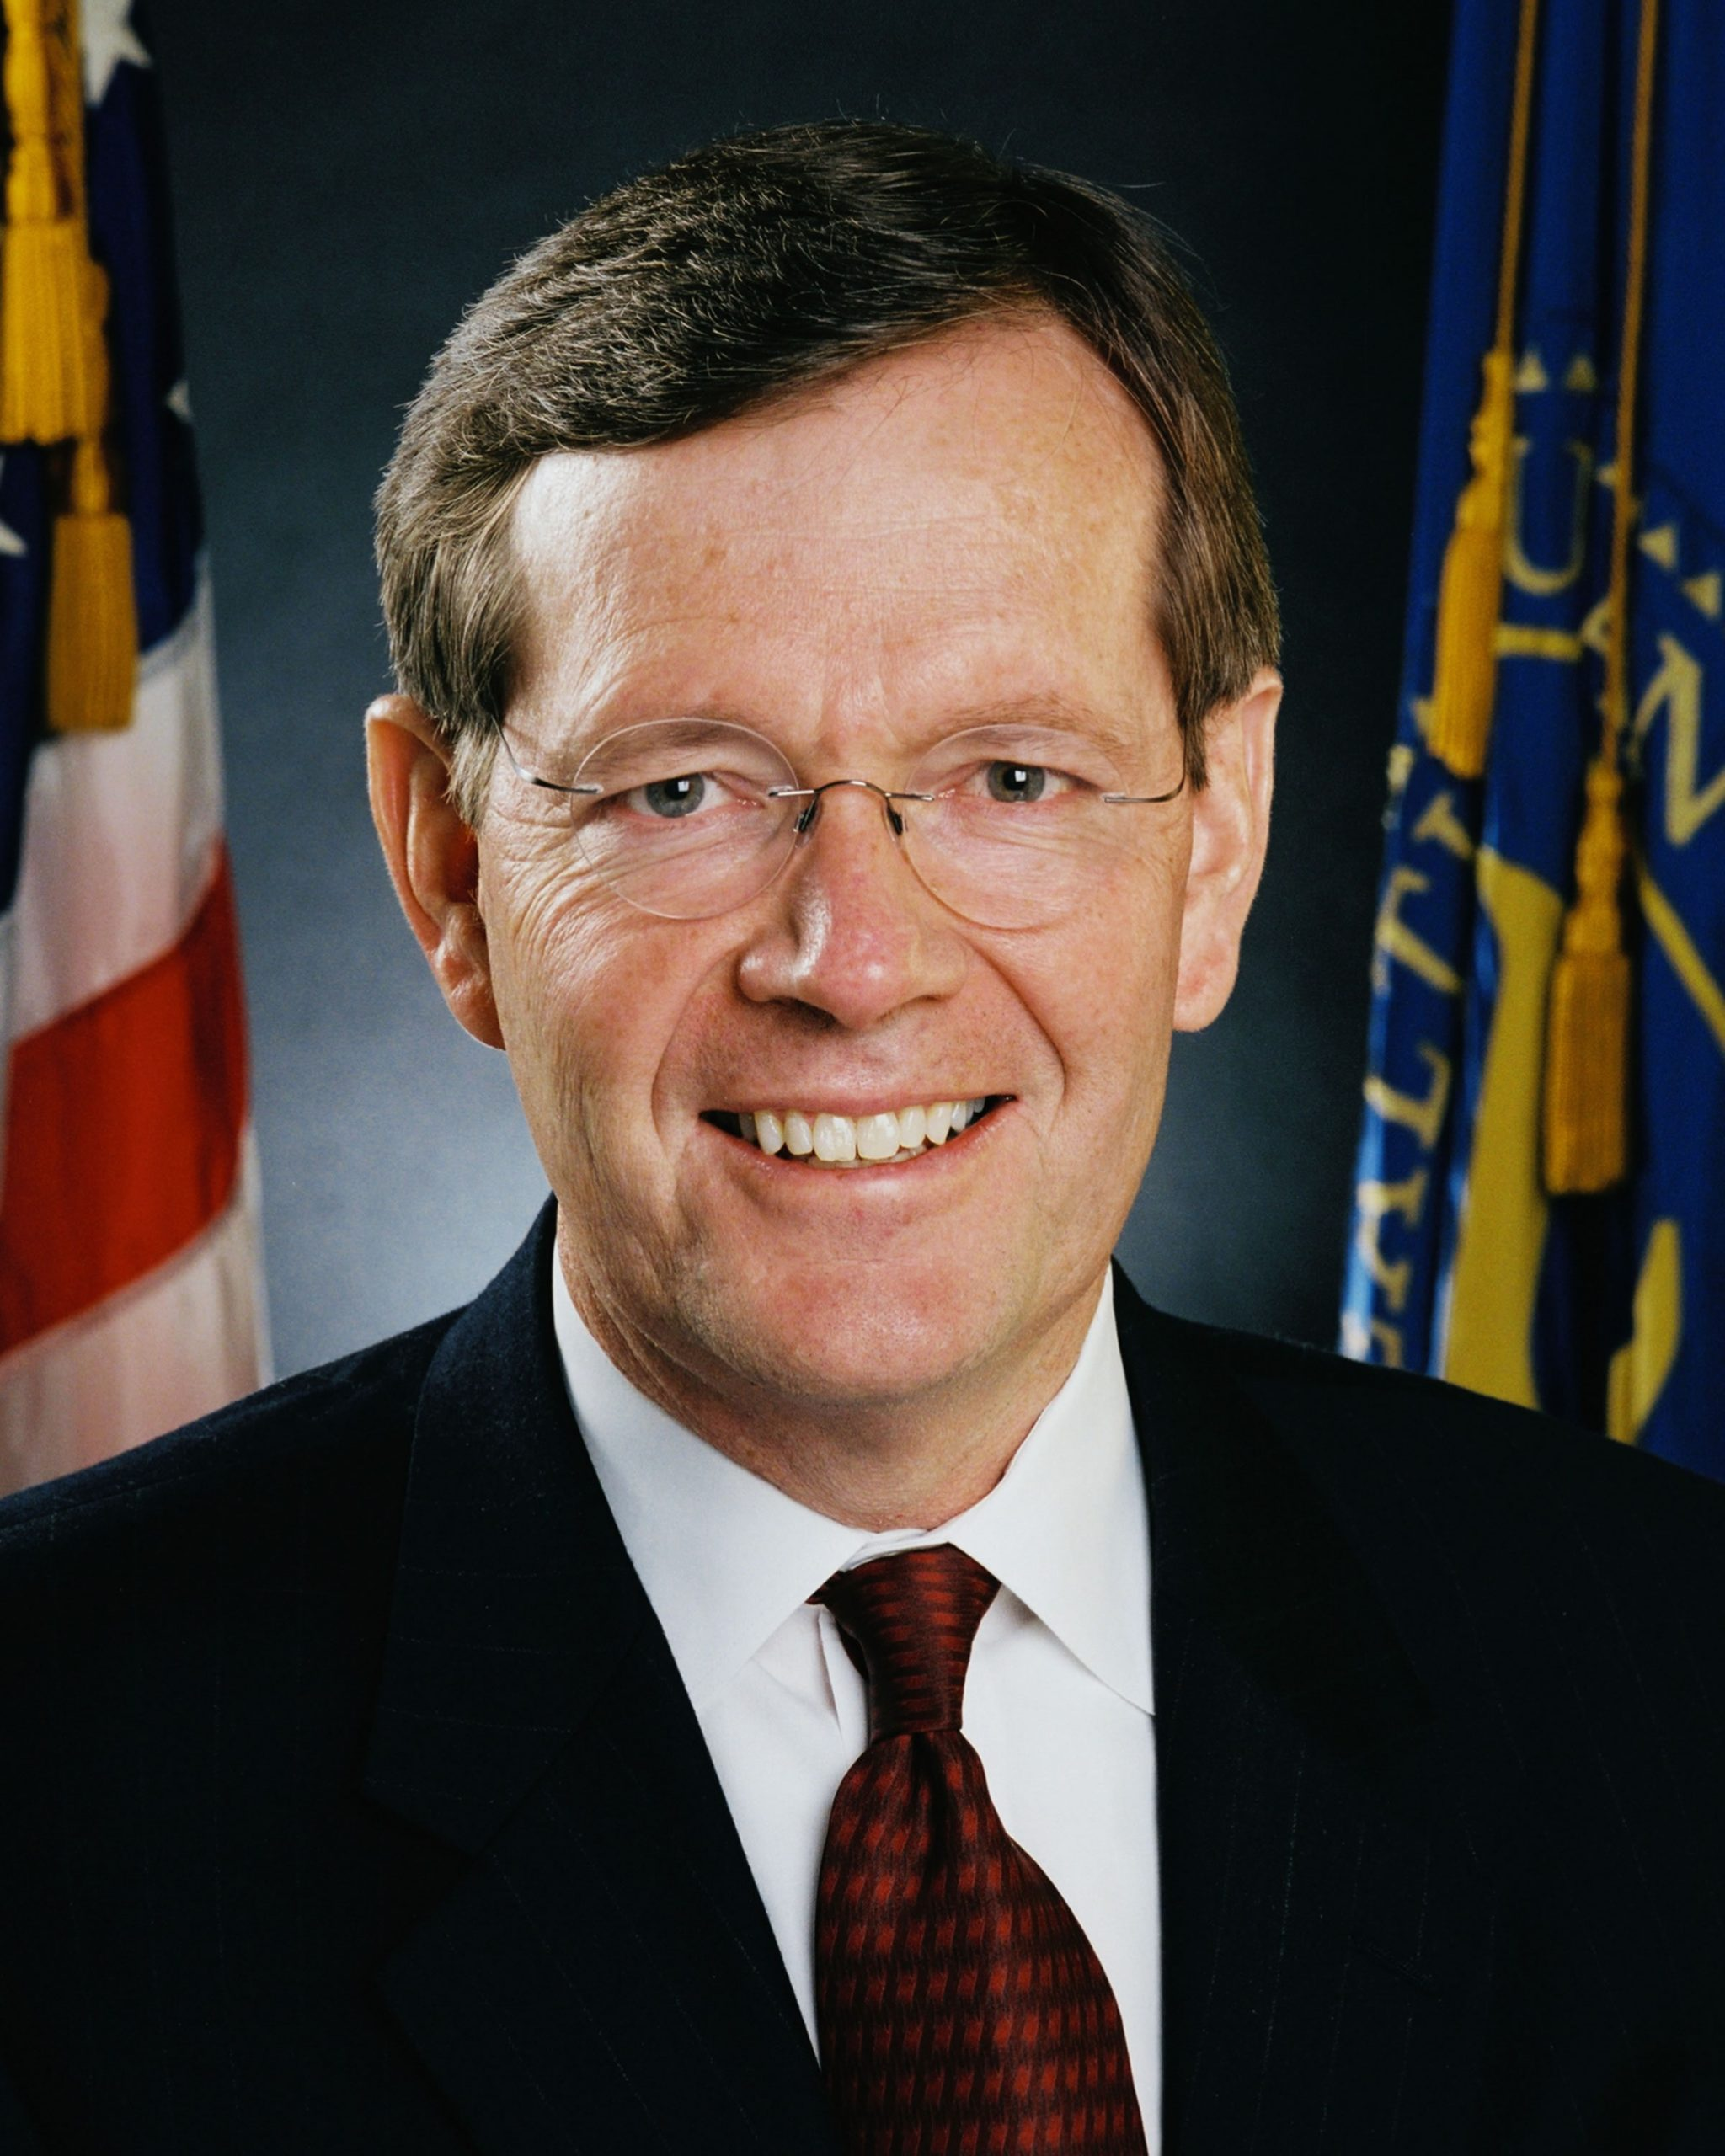 Secretary of the U.S. Department of Health and Human Services, Michael O. Leavitt.